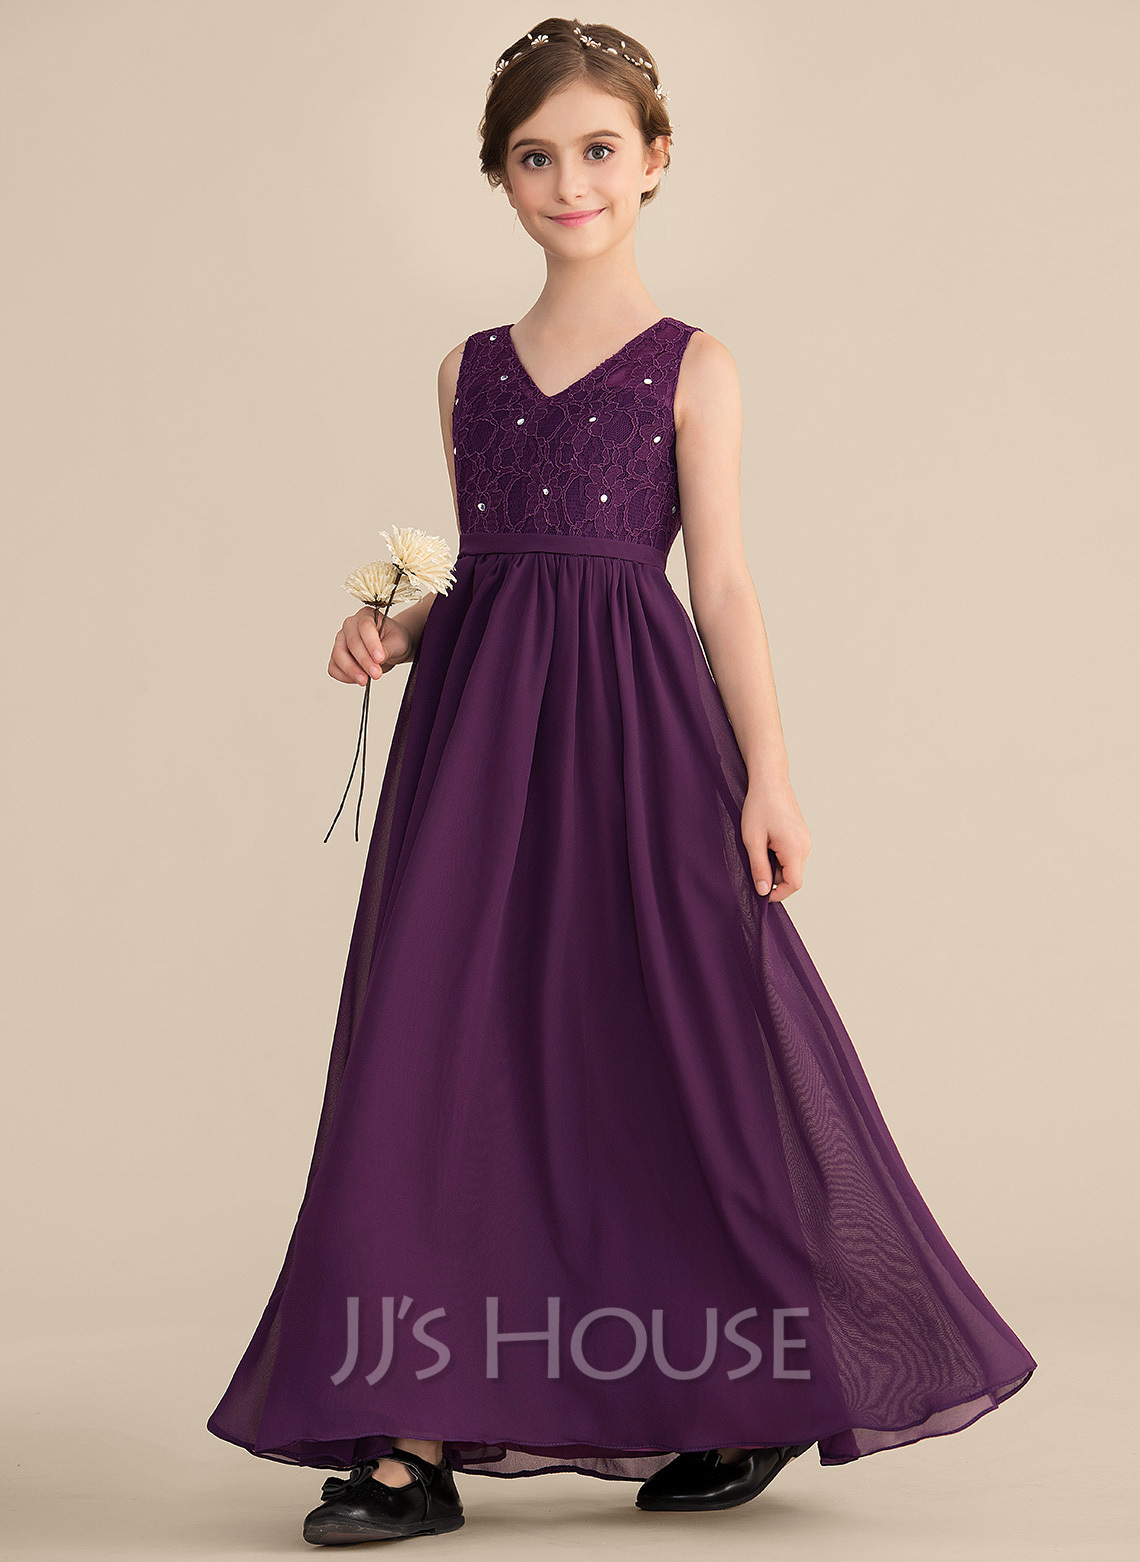 e8caab0af594 A-Line/Princess V-neck Floor-Length Chiffon Lace Junior Bridesmaid Dress. Loading  zoom